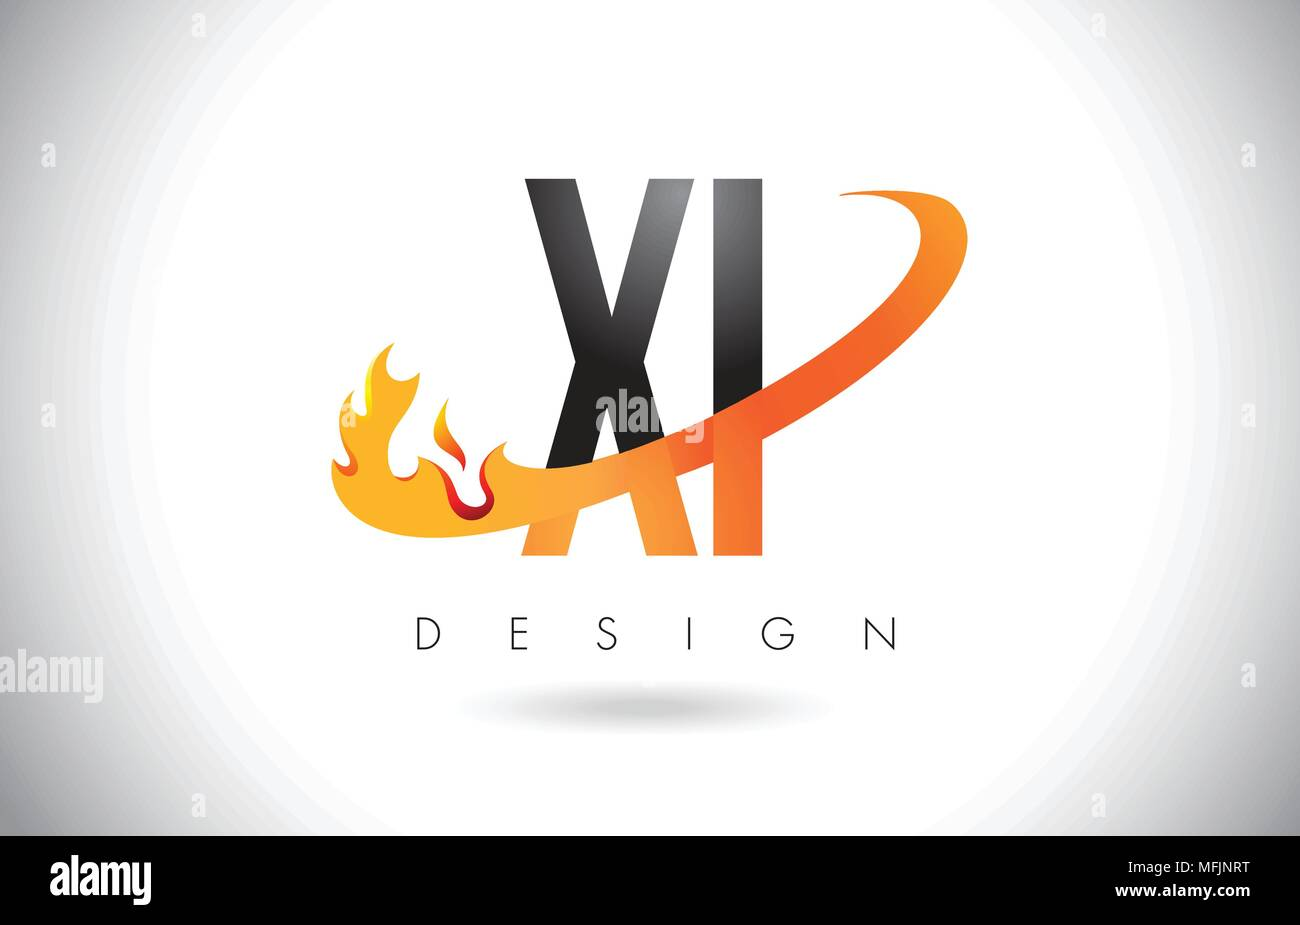 XI X I Letter Logo Design with Fire Flames and Orange Swoosh Vector Illustration. - Stock Vector